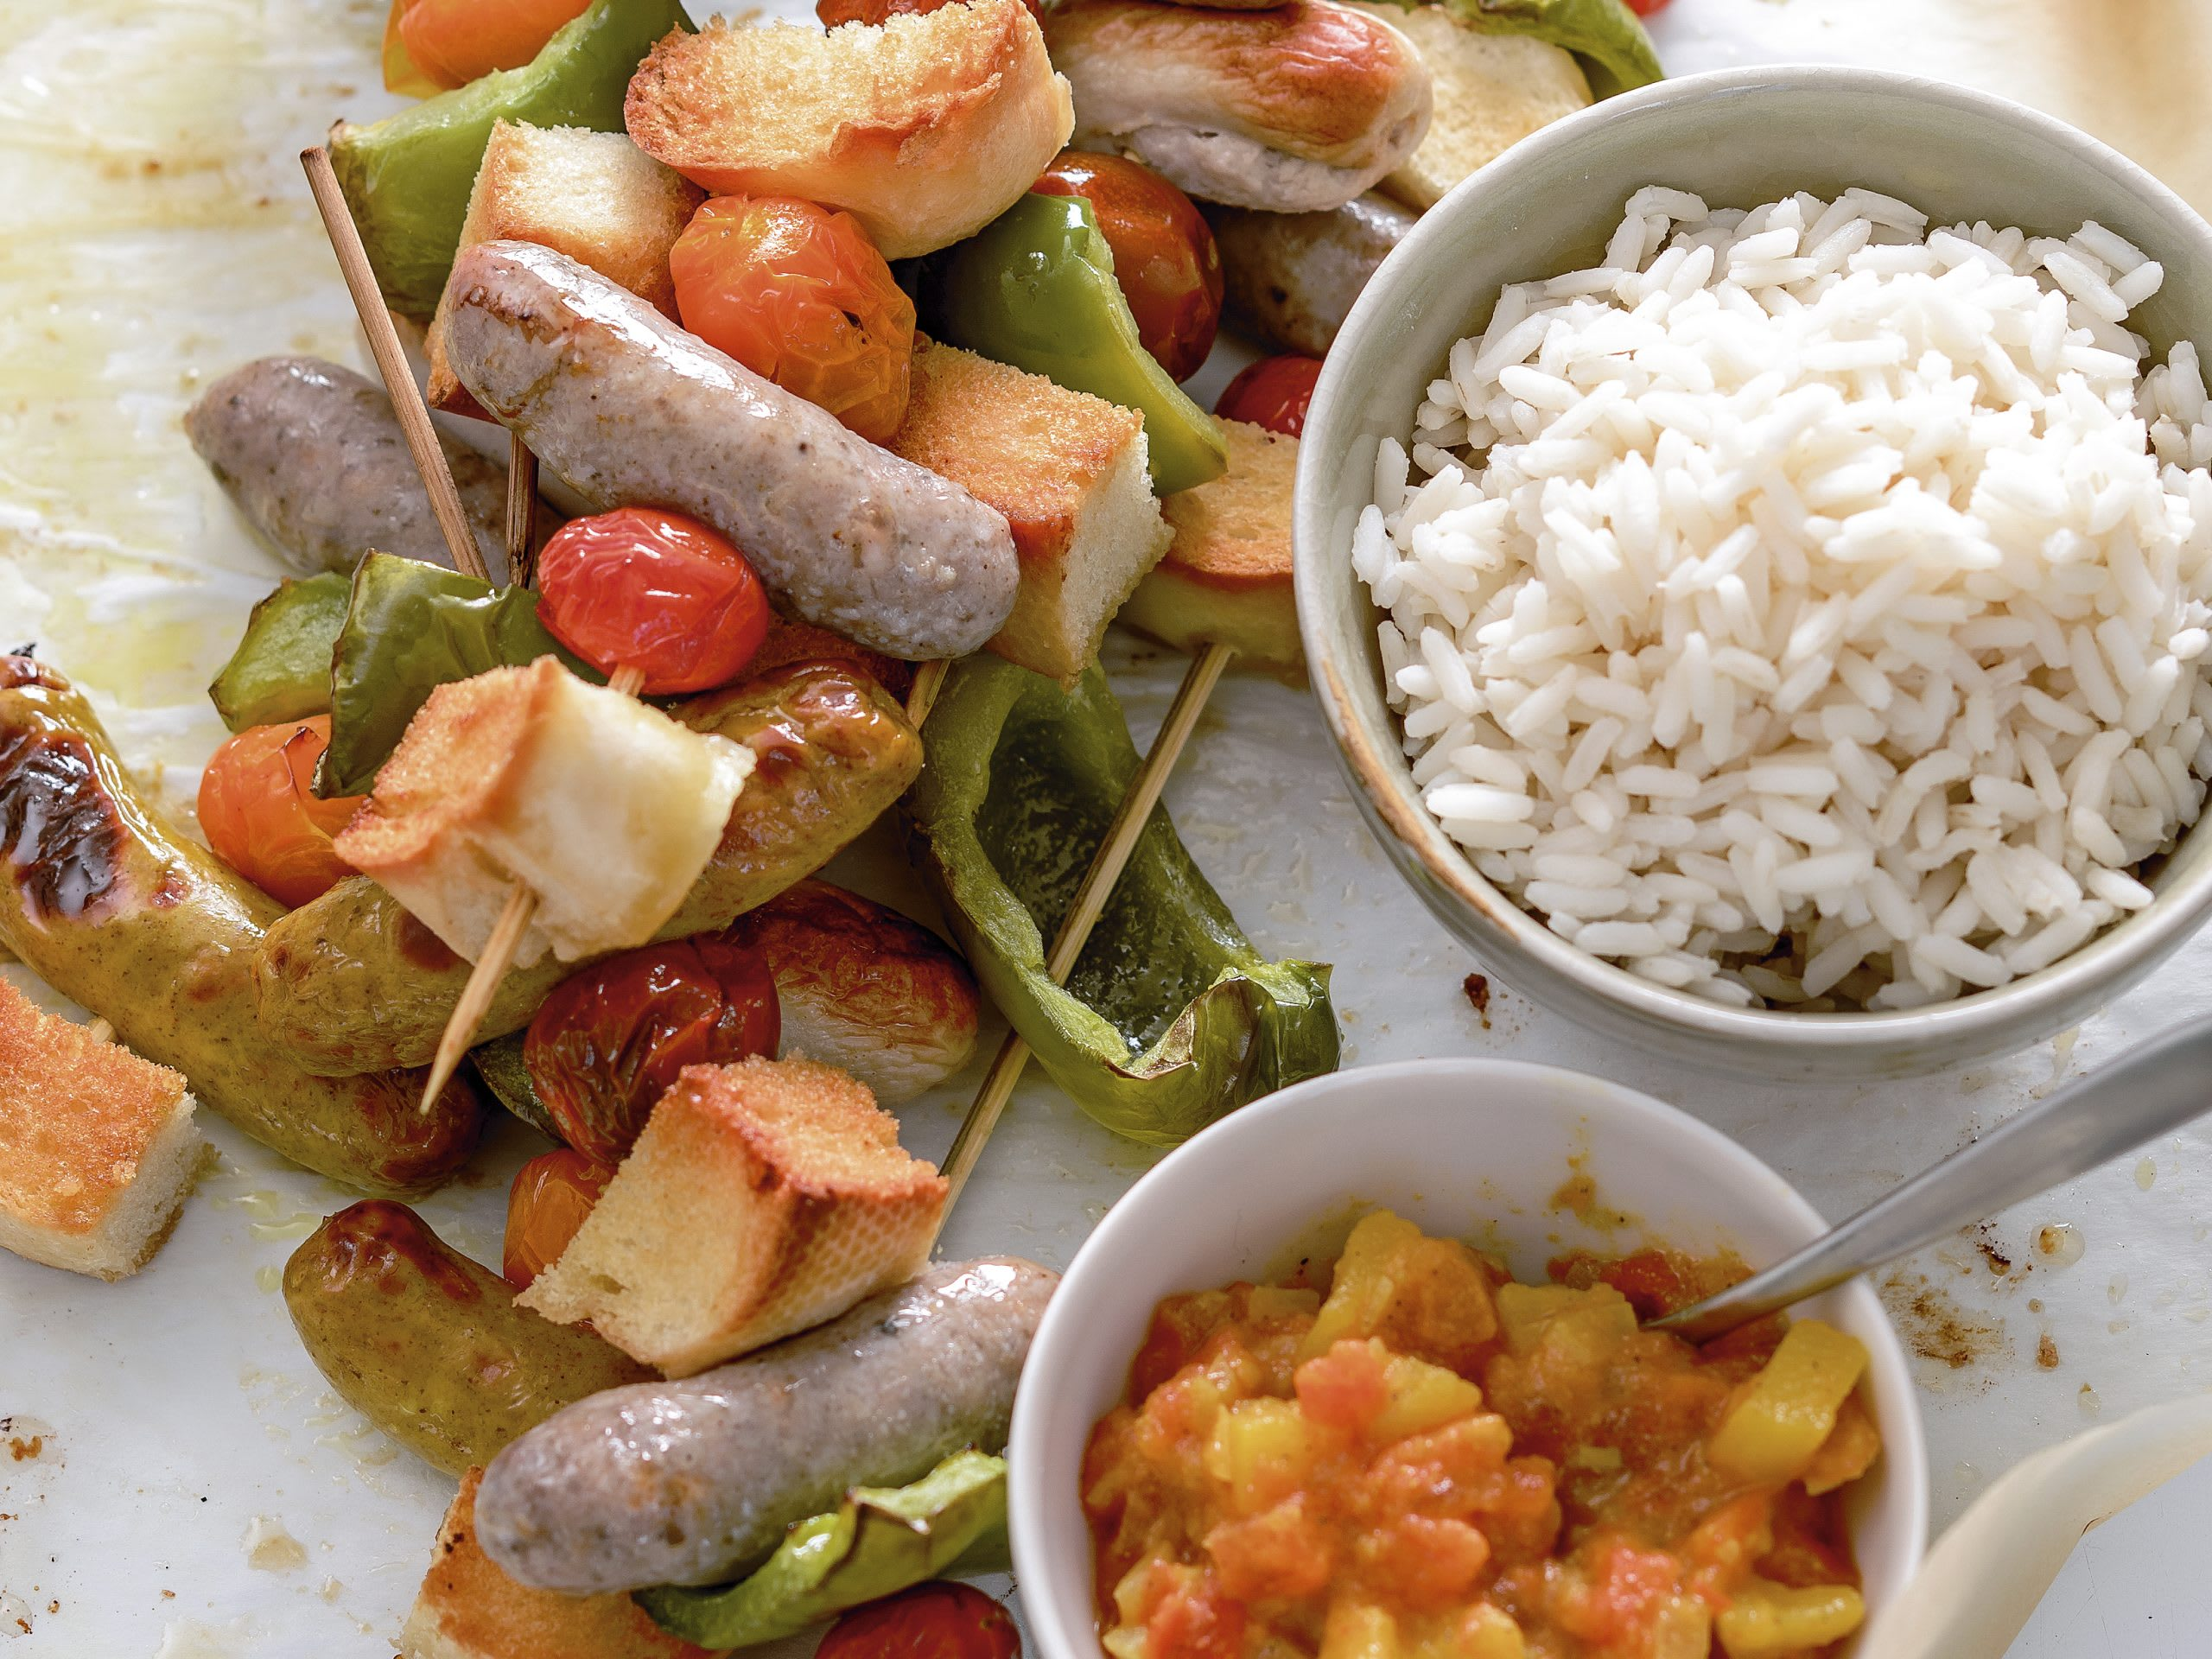 Brochettes de saucisses et dip tomates-curry